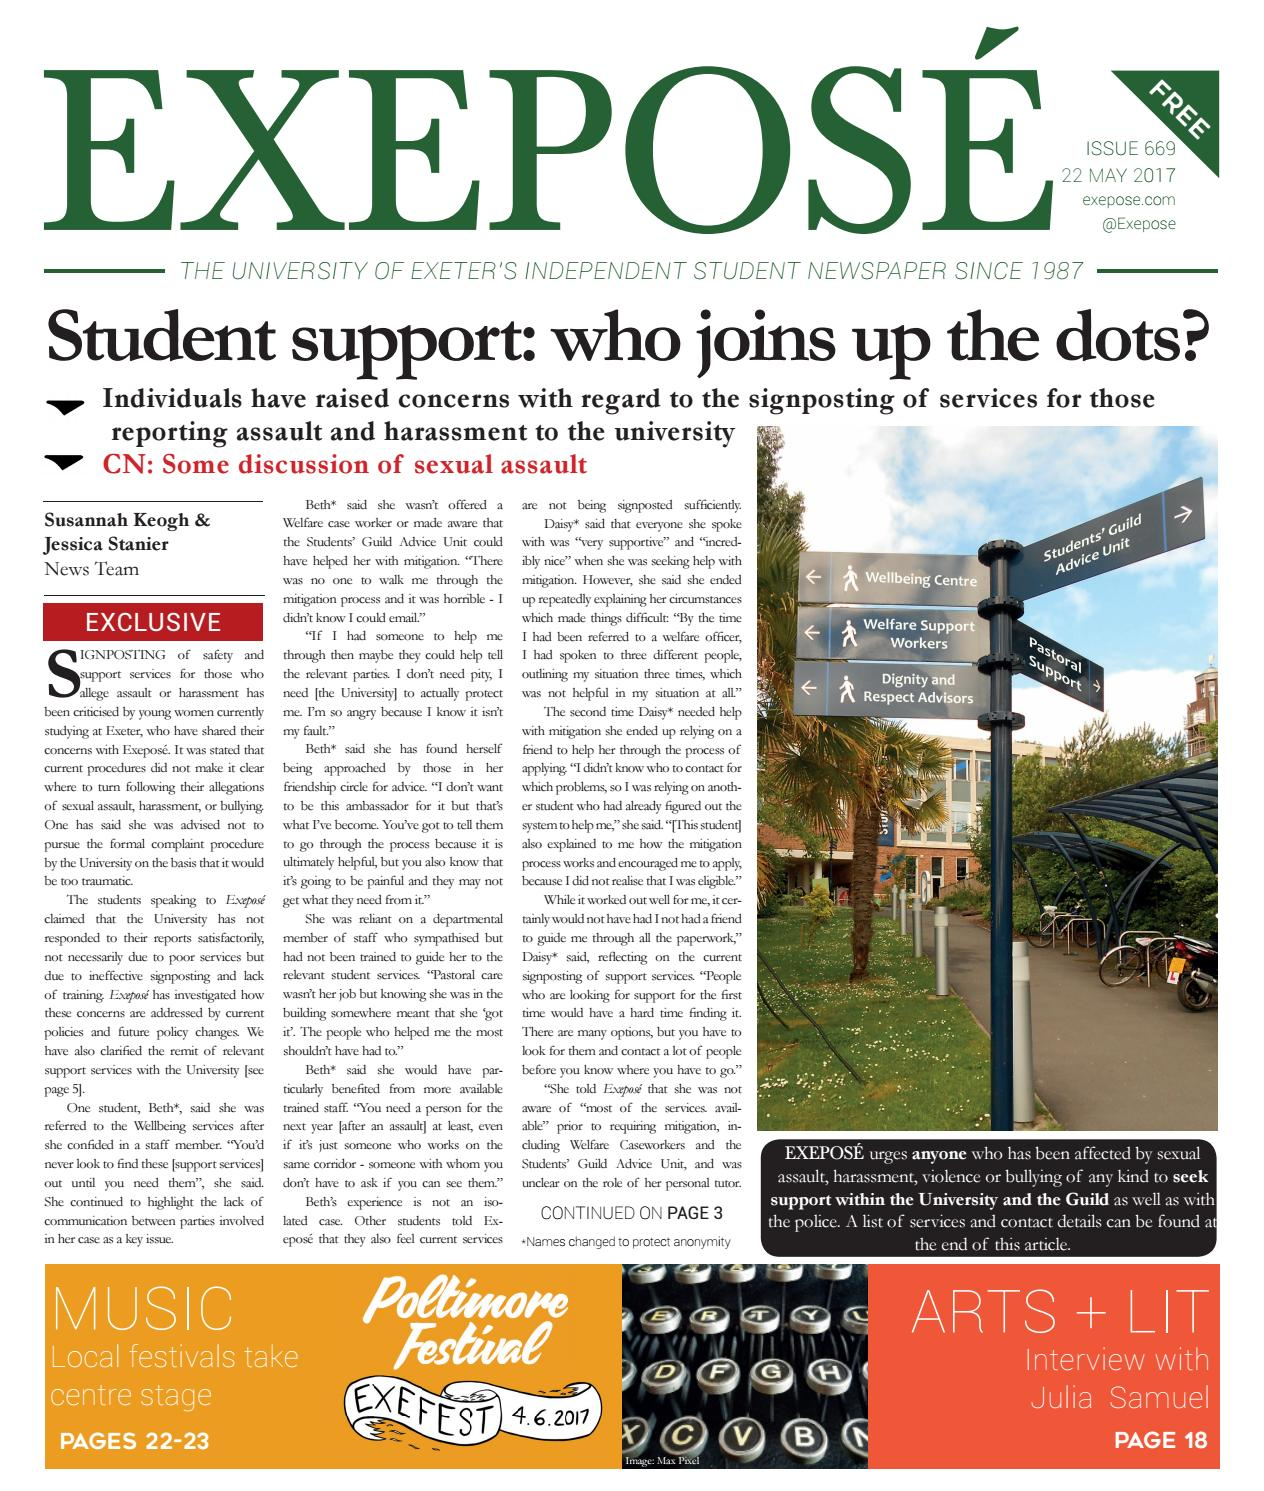 Issue 669, 22 May 2017 by Exeposé - issuu